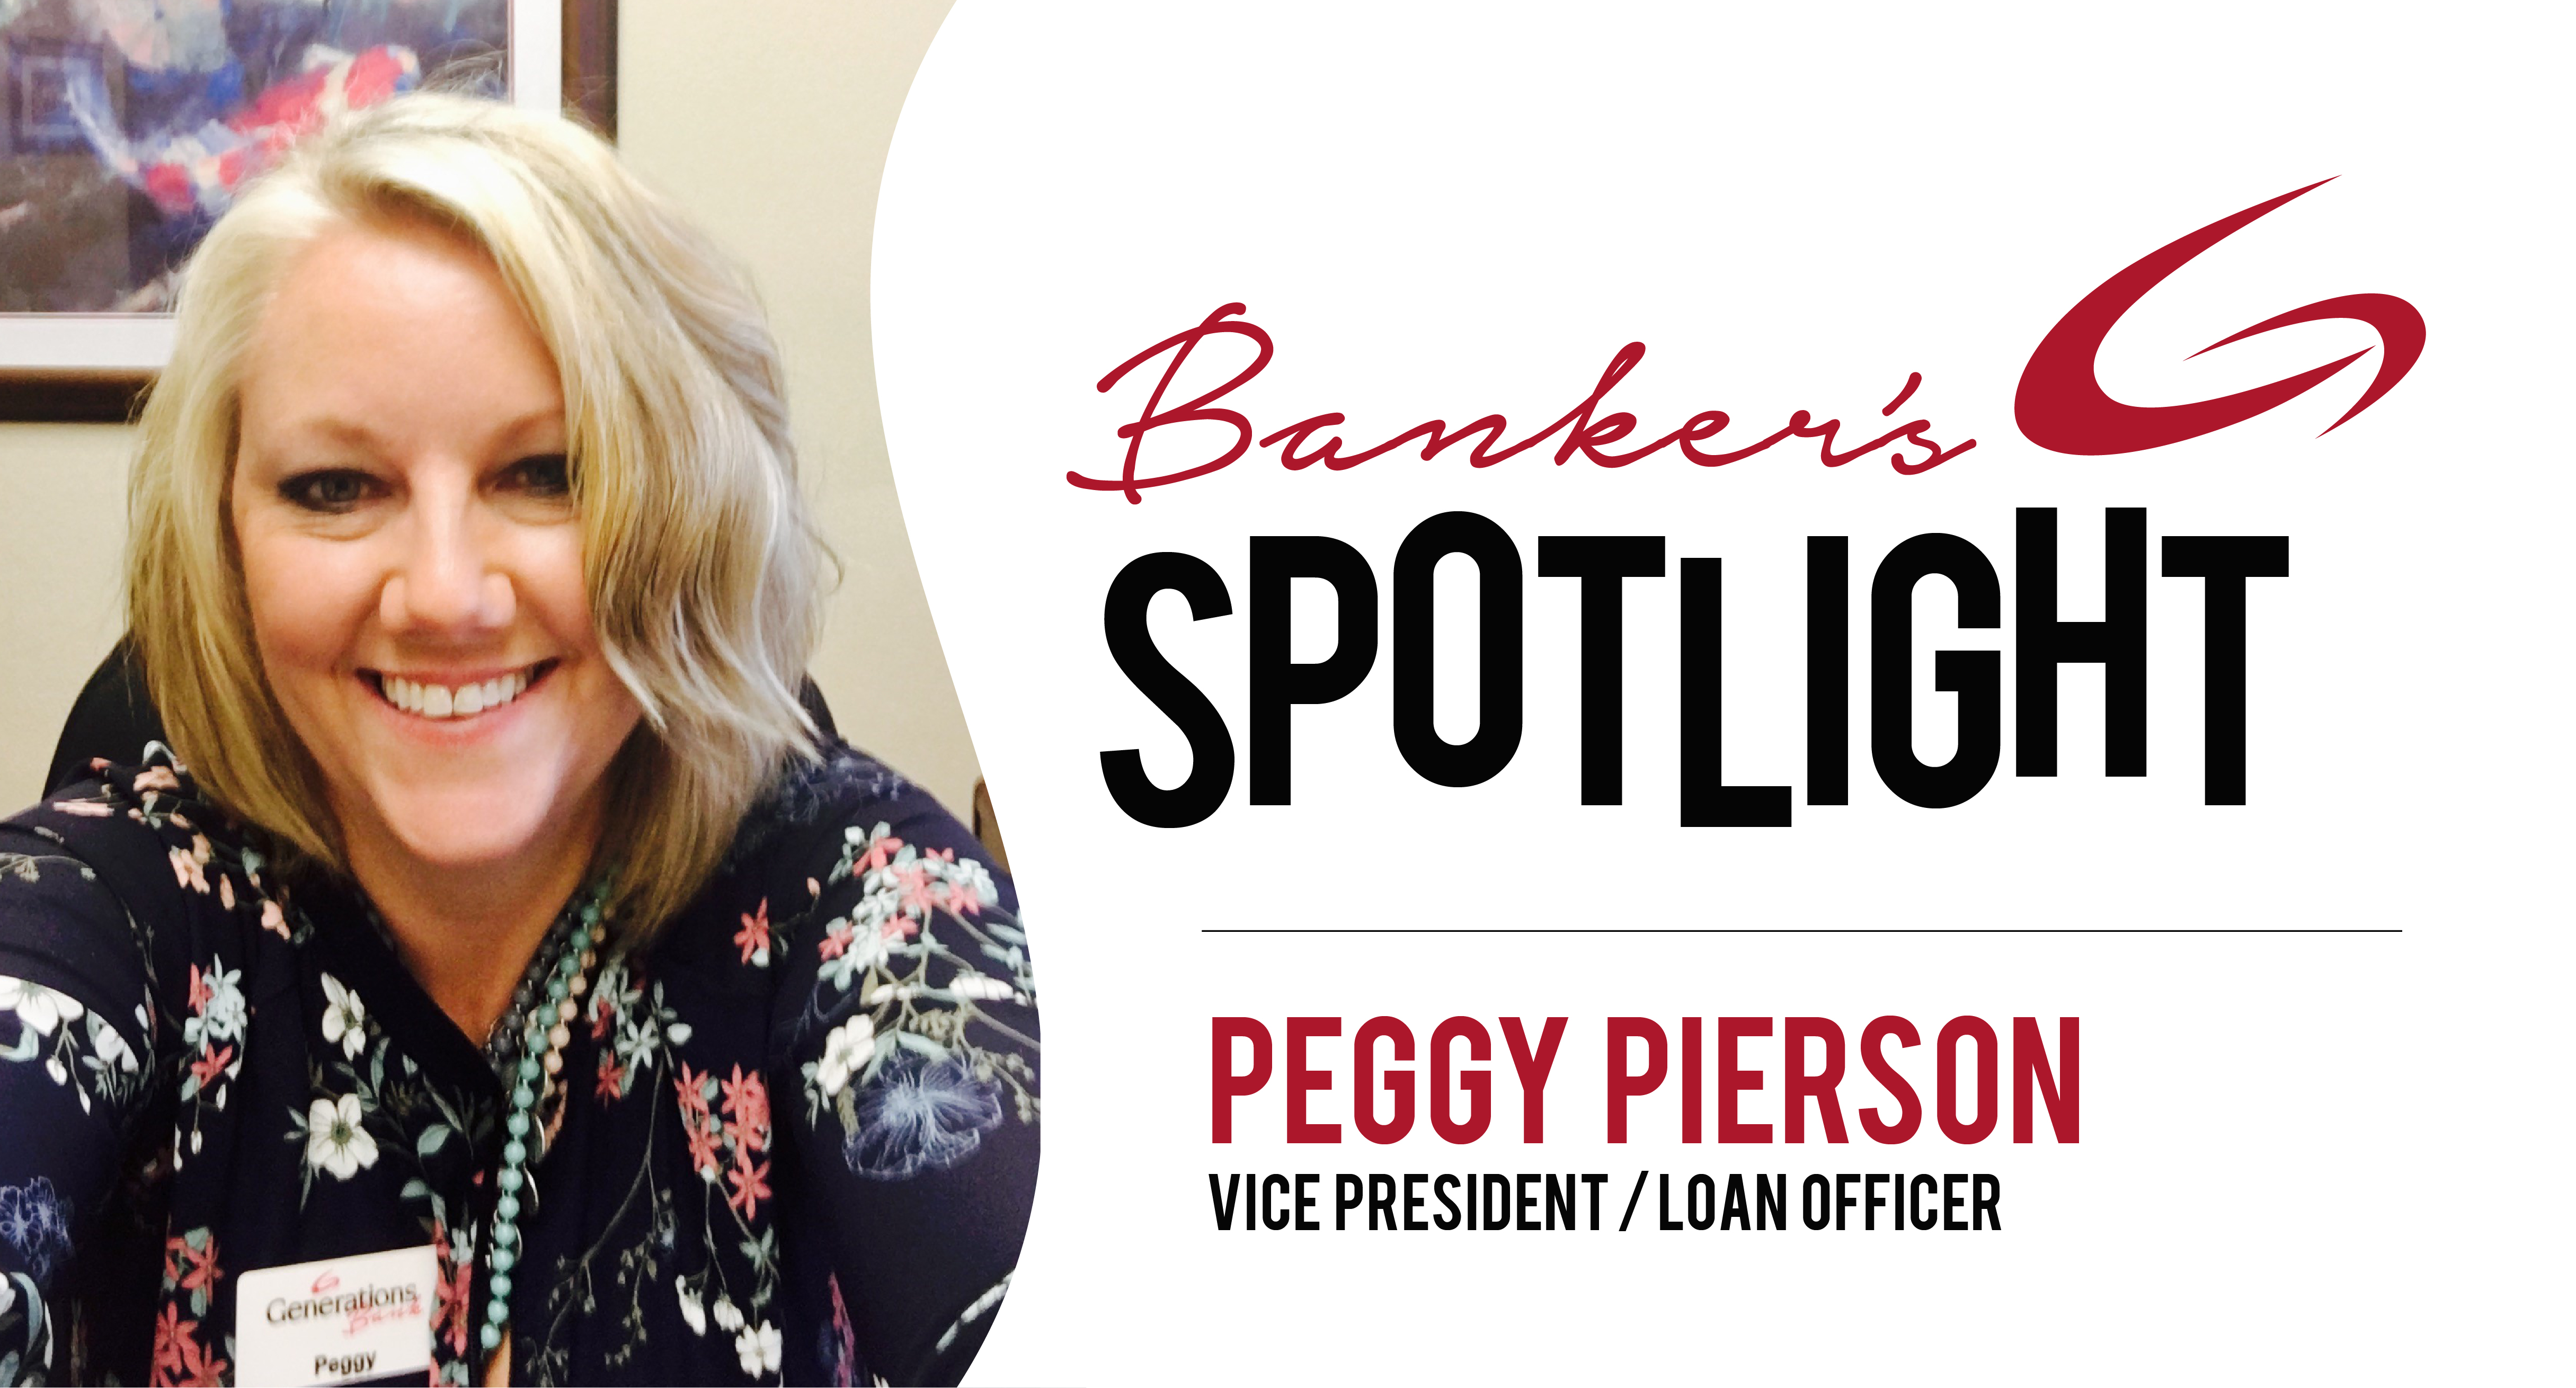 Banker Spotlight - Peggy Pierson